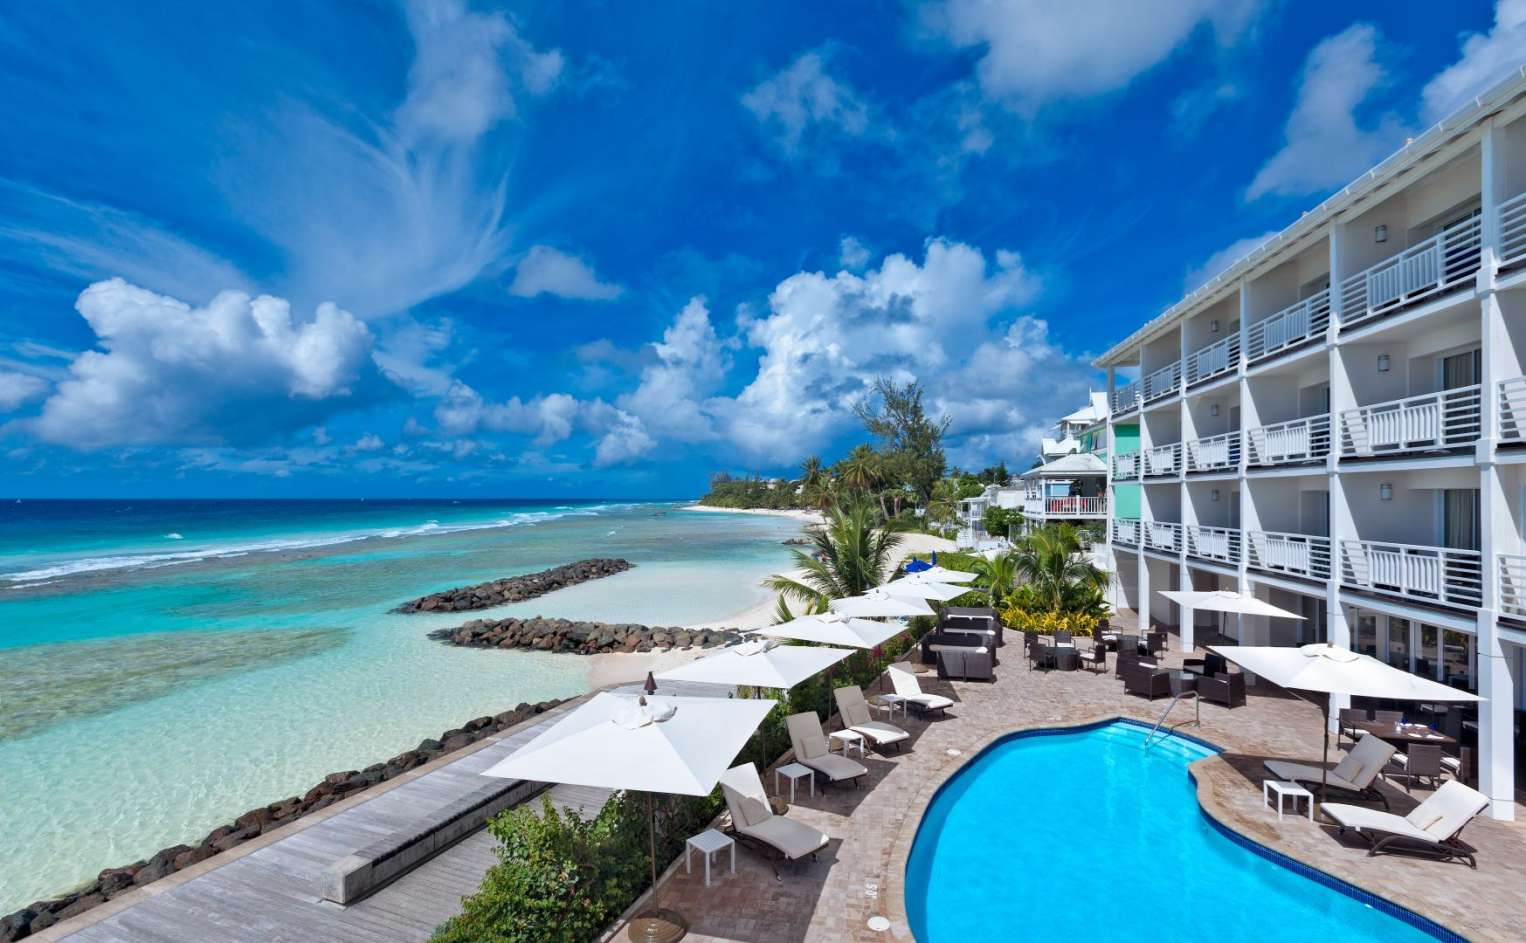 Barbados 4* Adults-Only All-Inc Boutique Beachfront Escape - Save 59%